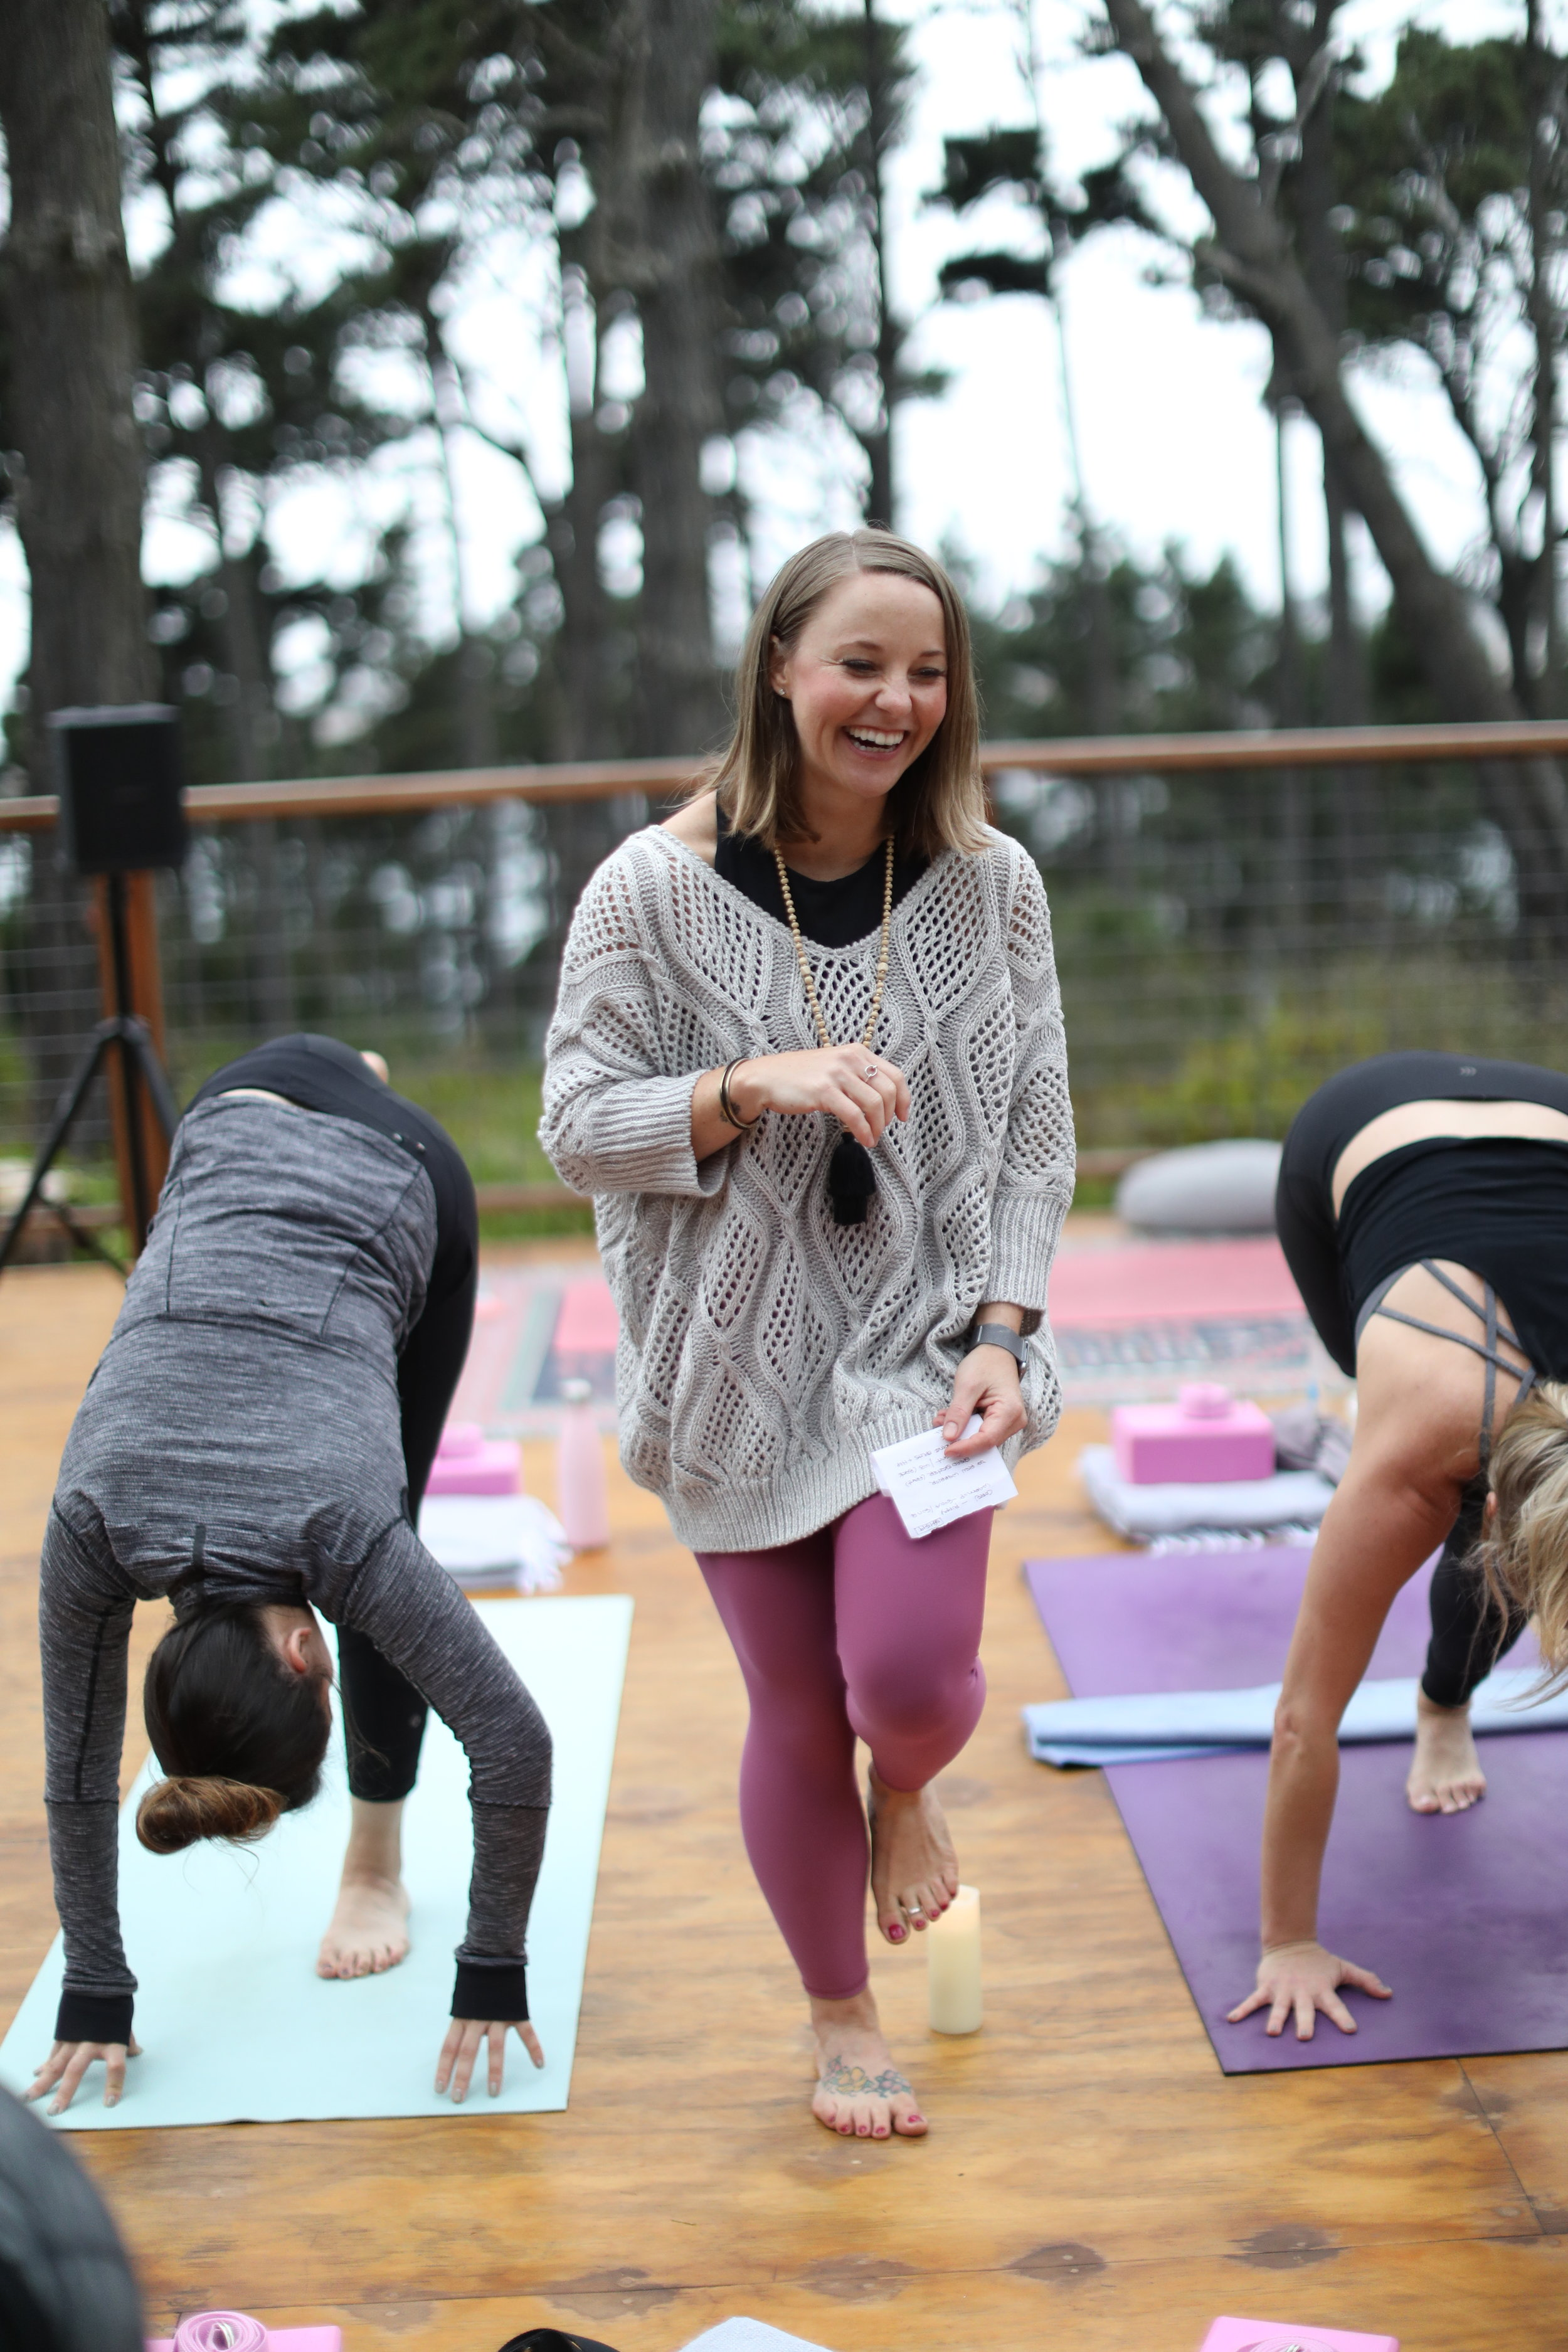 Yoga by Paige Glamping Retreat in Mendocino